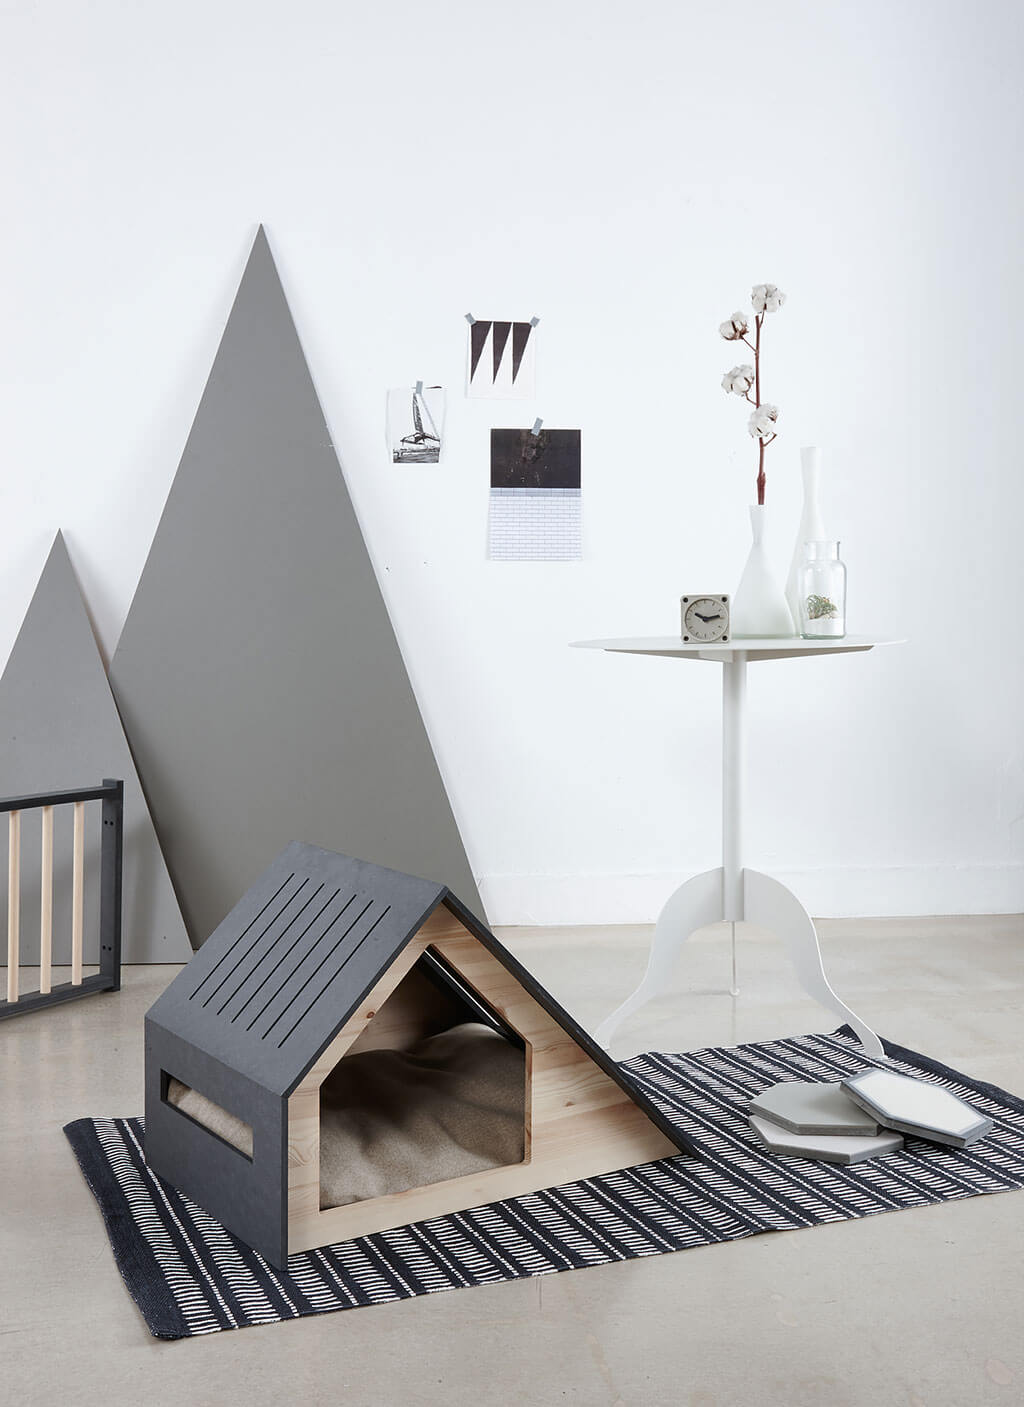 Larvik architectural design by Bad Marlon for dogs